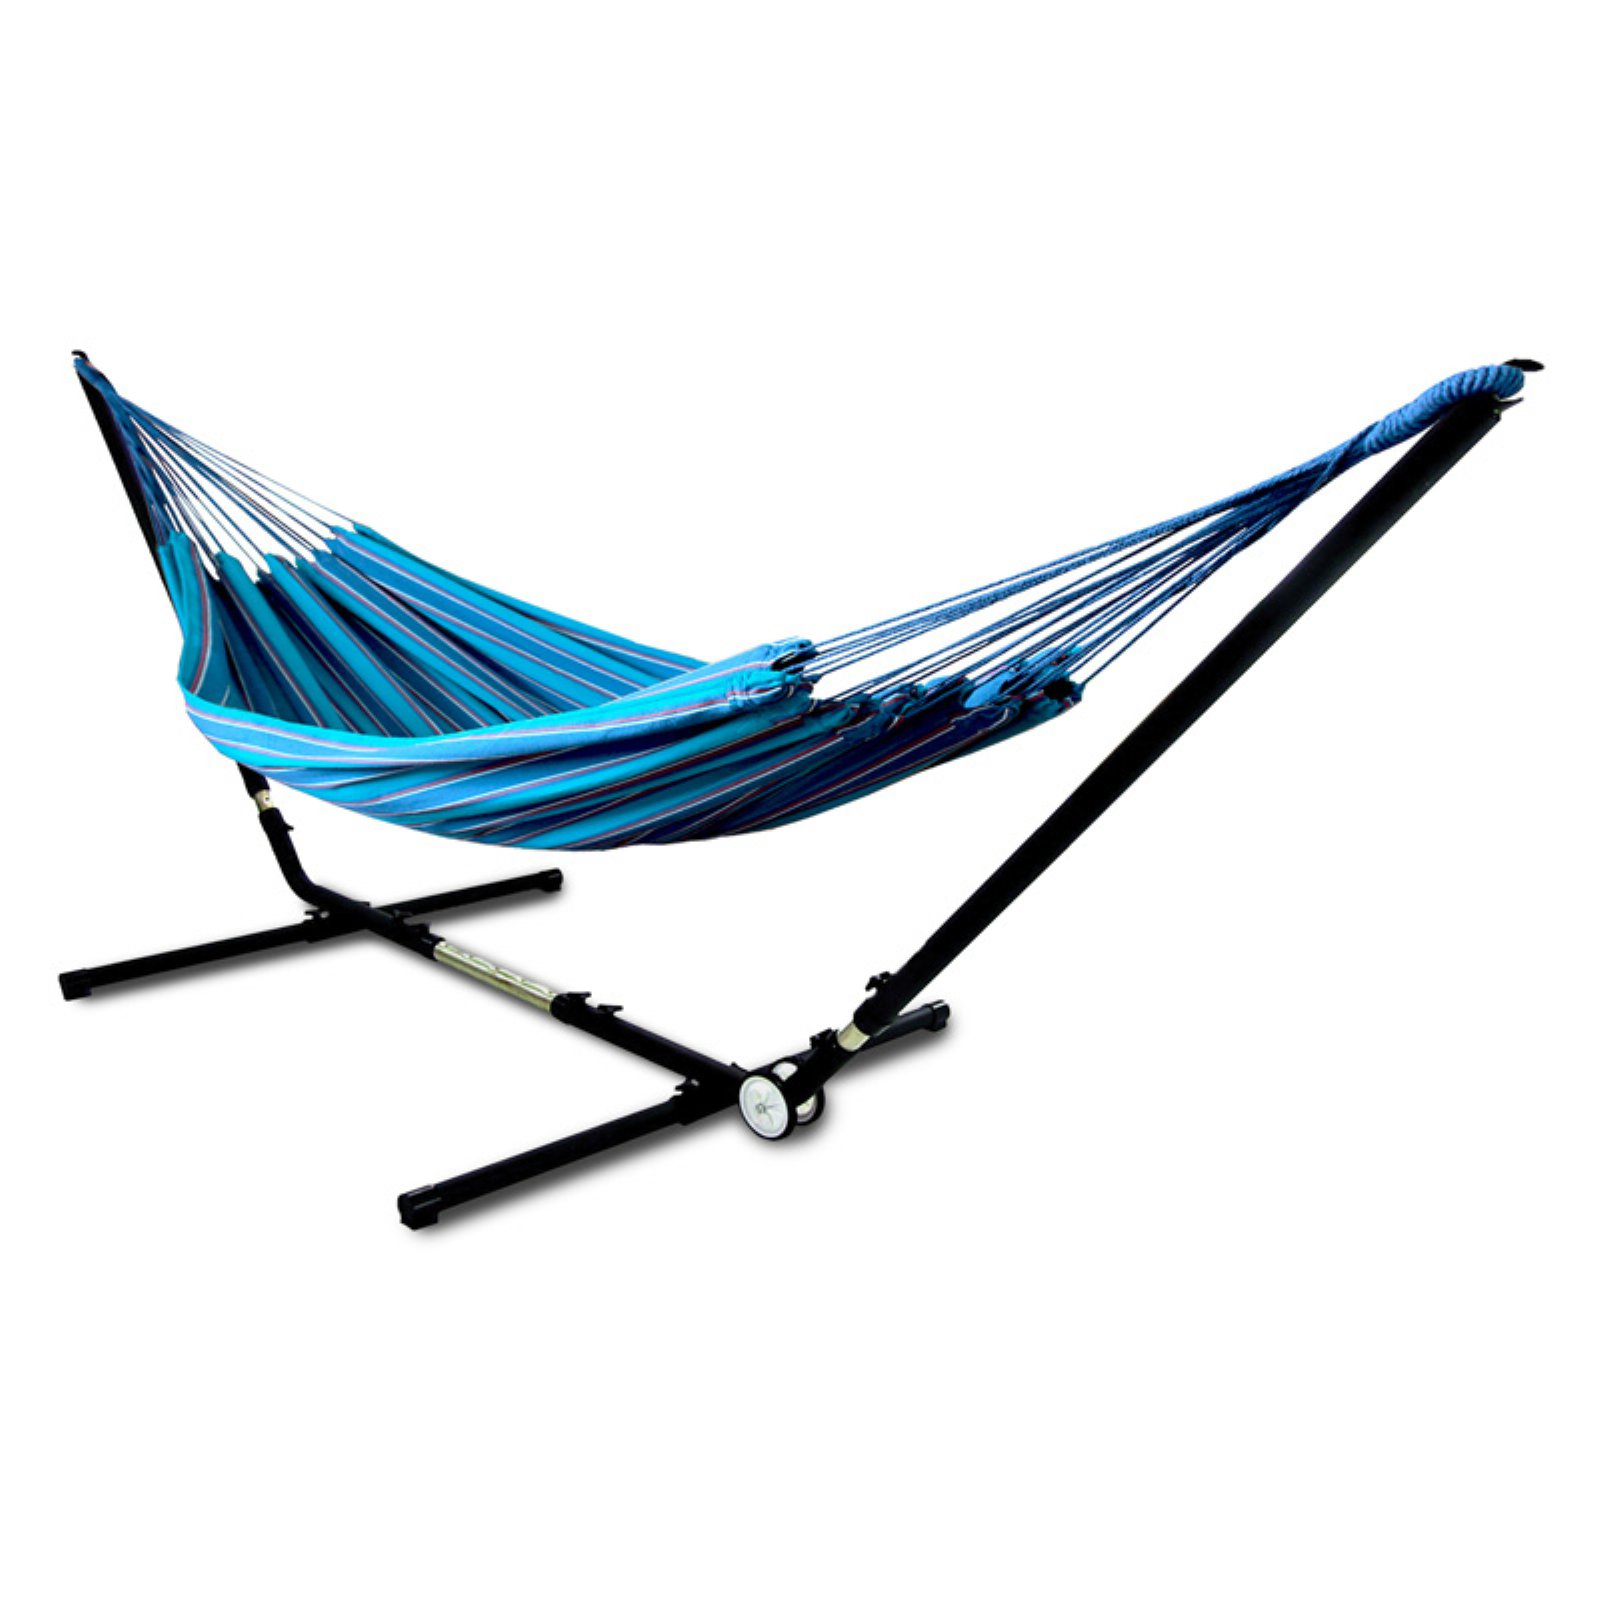 Hammaka Brazilian Two Person Hammock with Adjust to Fit Stand